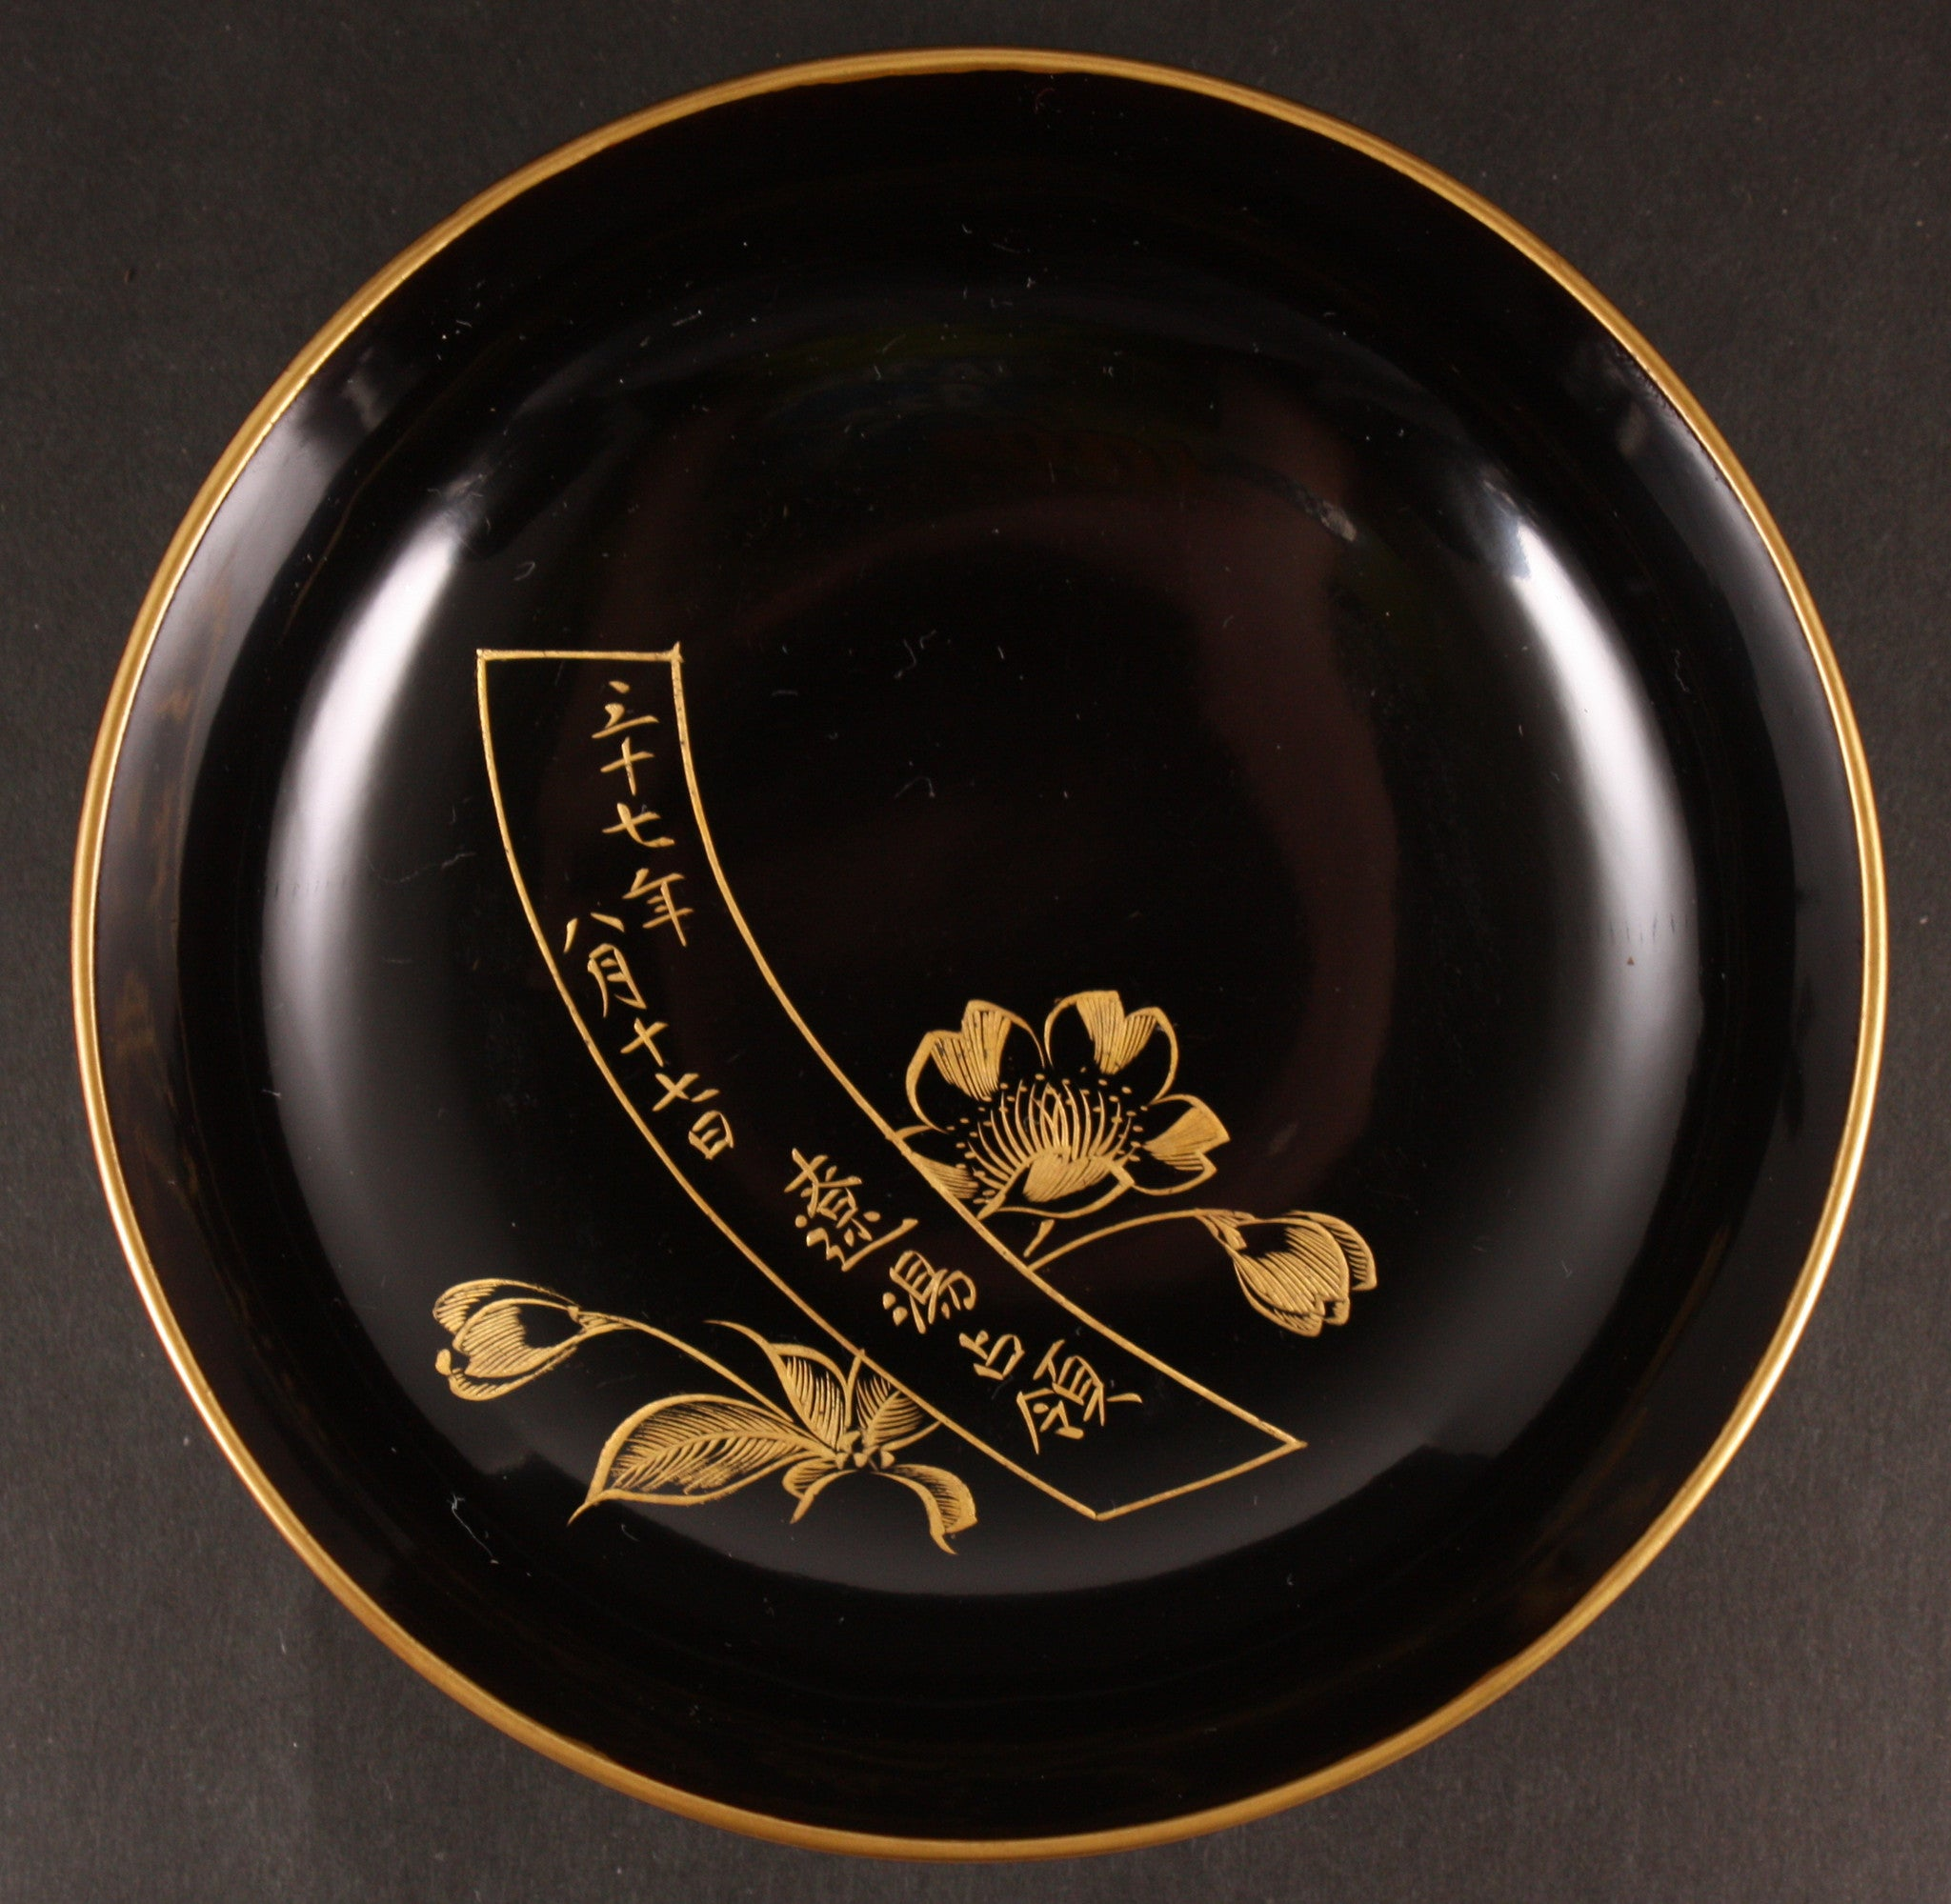 Beautiful Makie Lacquer Set of Five Russo Japanese War Land Battles Commemoration Dishes